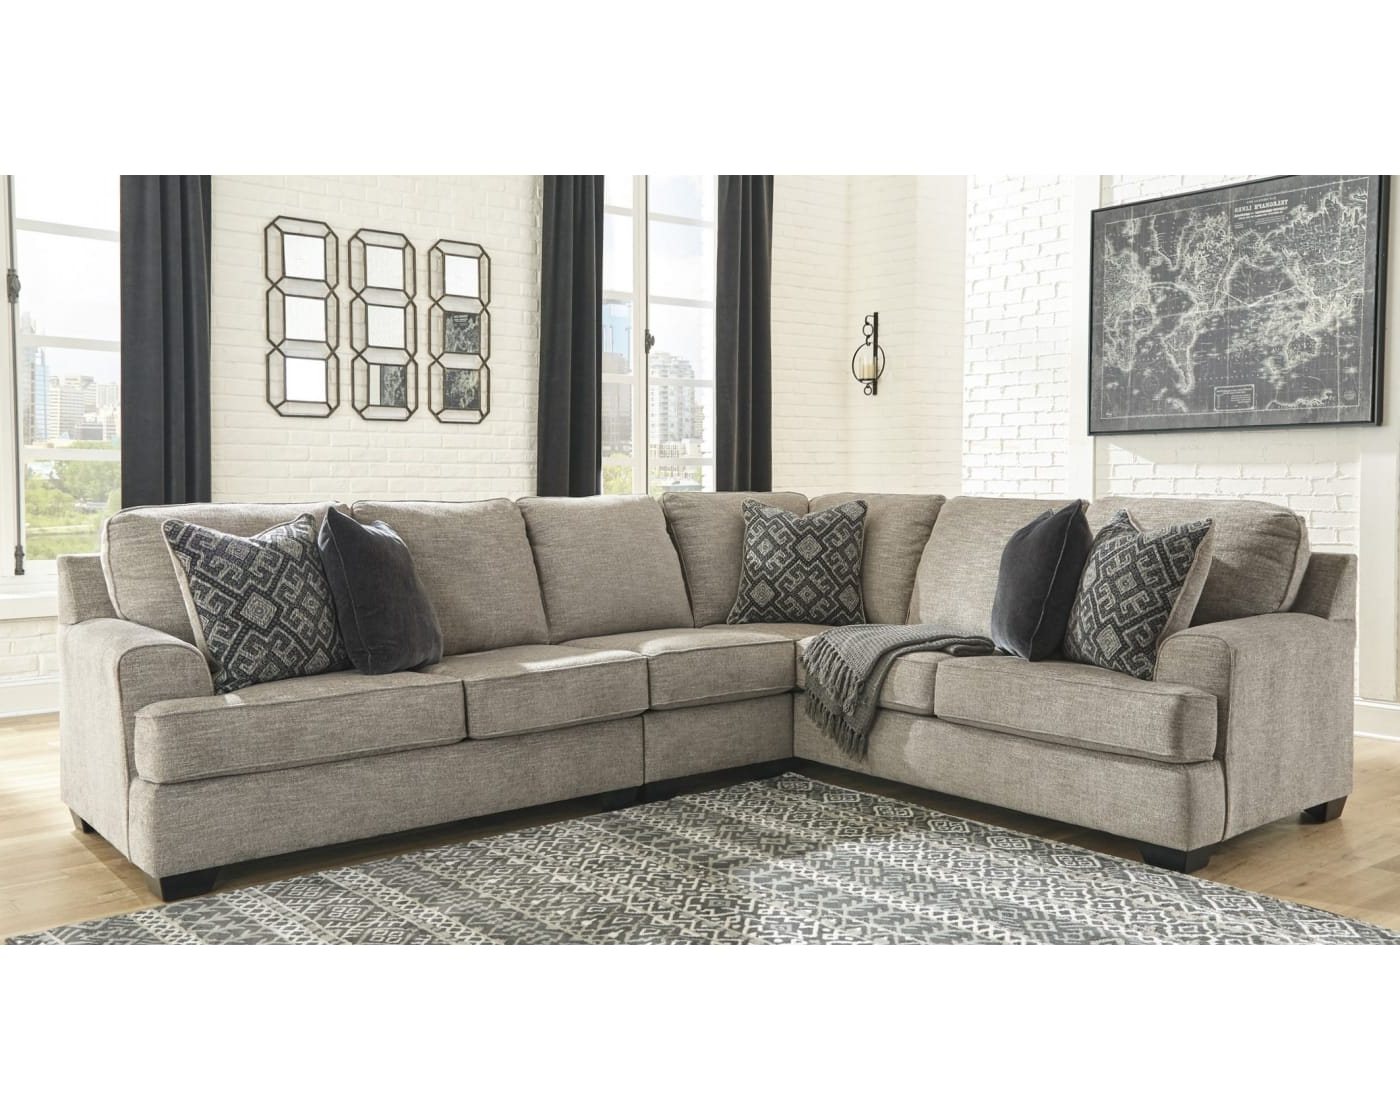 Most Recent Bovarian Stone 3 Piece Right Facing Sectional Sofa With Dulce Right Sectional Sofas Twill Stone (View 5 of 25)